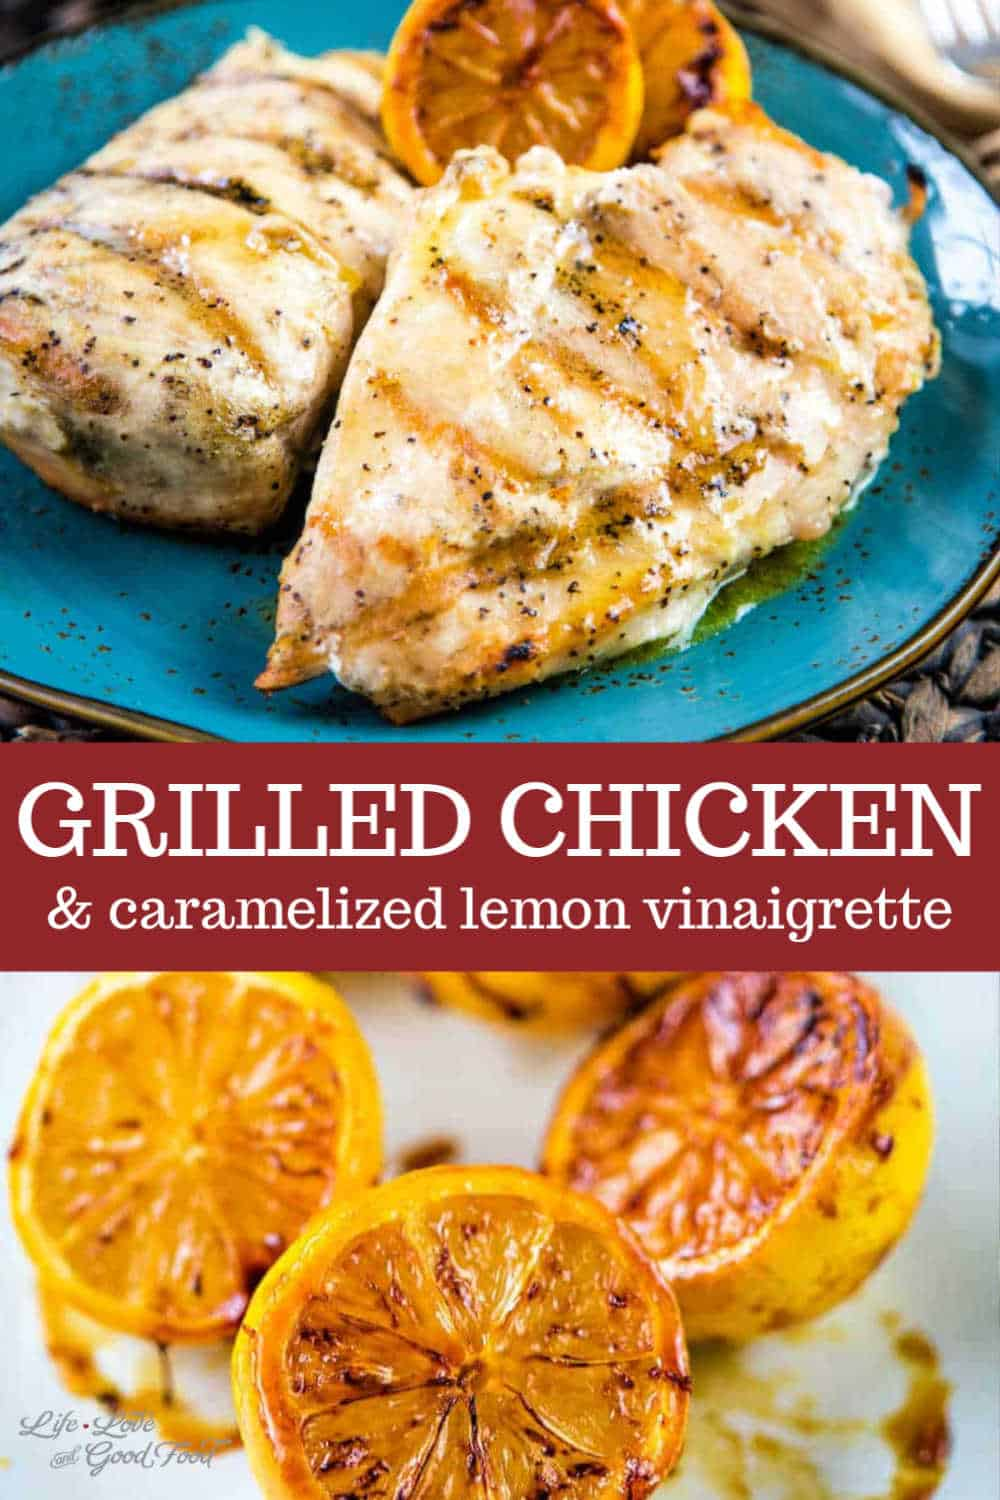 Serve Grilled Chicken with Caramelized Lemon Vinaigrette over salad greens, rice pilaf, or pasta for an easy and delicious dinner. This easy recipe starts with perfectly grilled chicken breasts seasoned with salt and pepper. Once removed from the grill, the chicken is basted with a sweet and tangy lemon vinaigrette. Light, fresh, and healthy, this is one of my favorite grilling recipes ever.